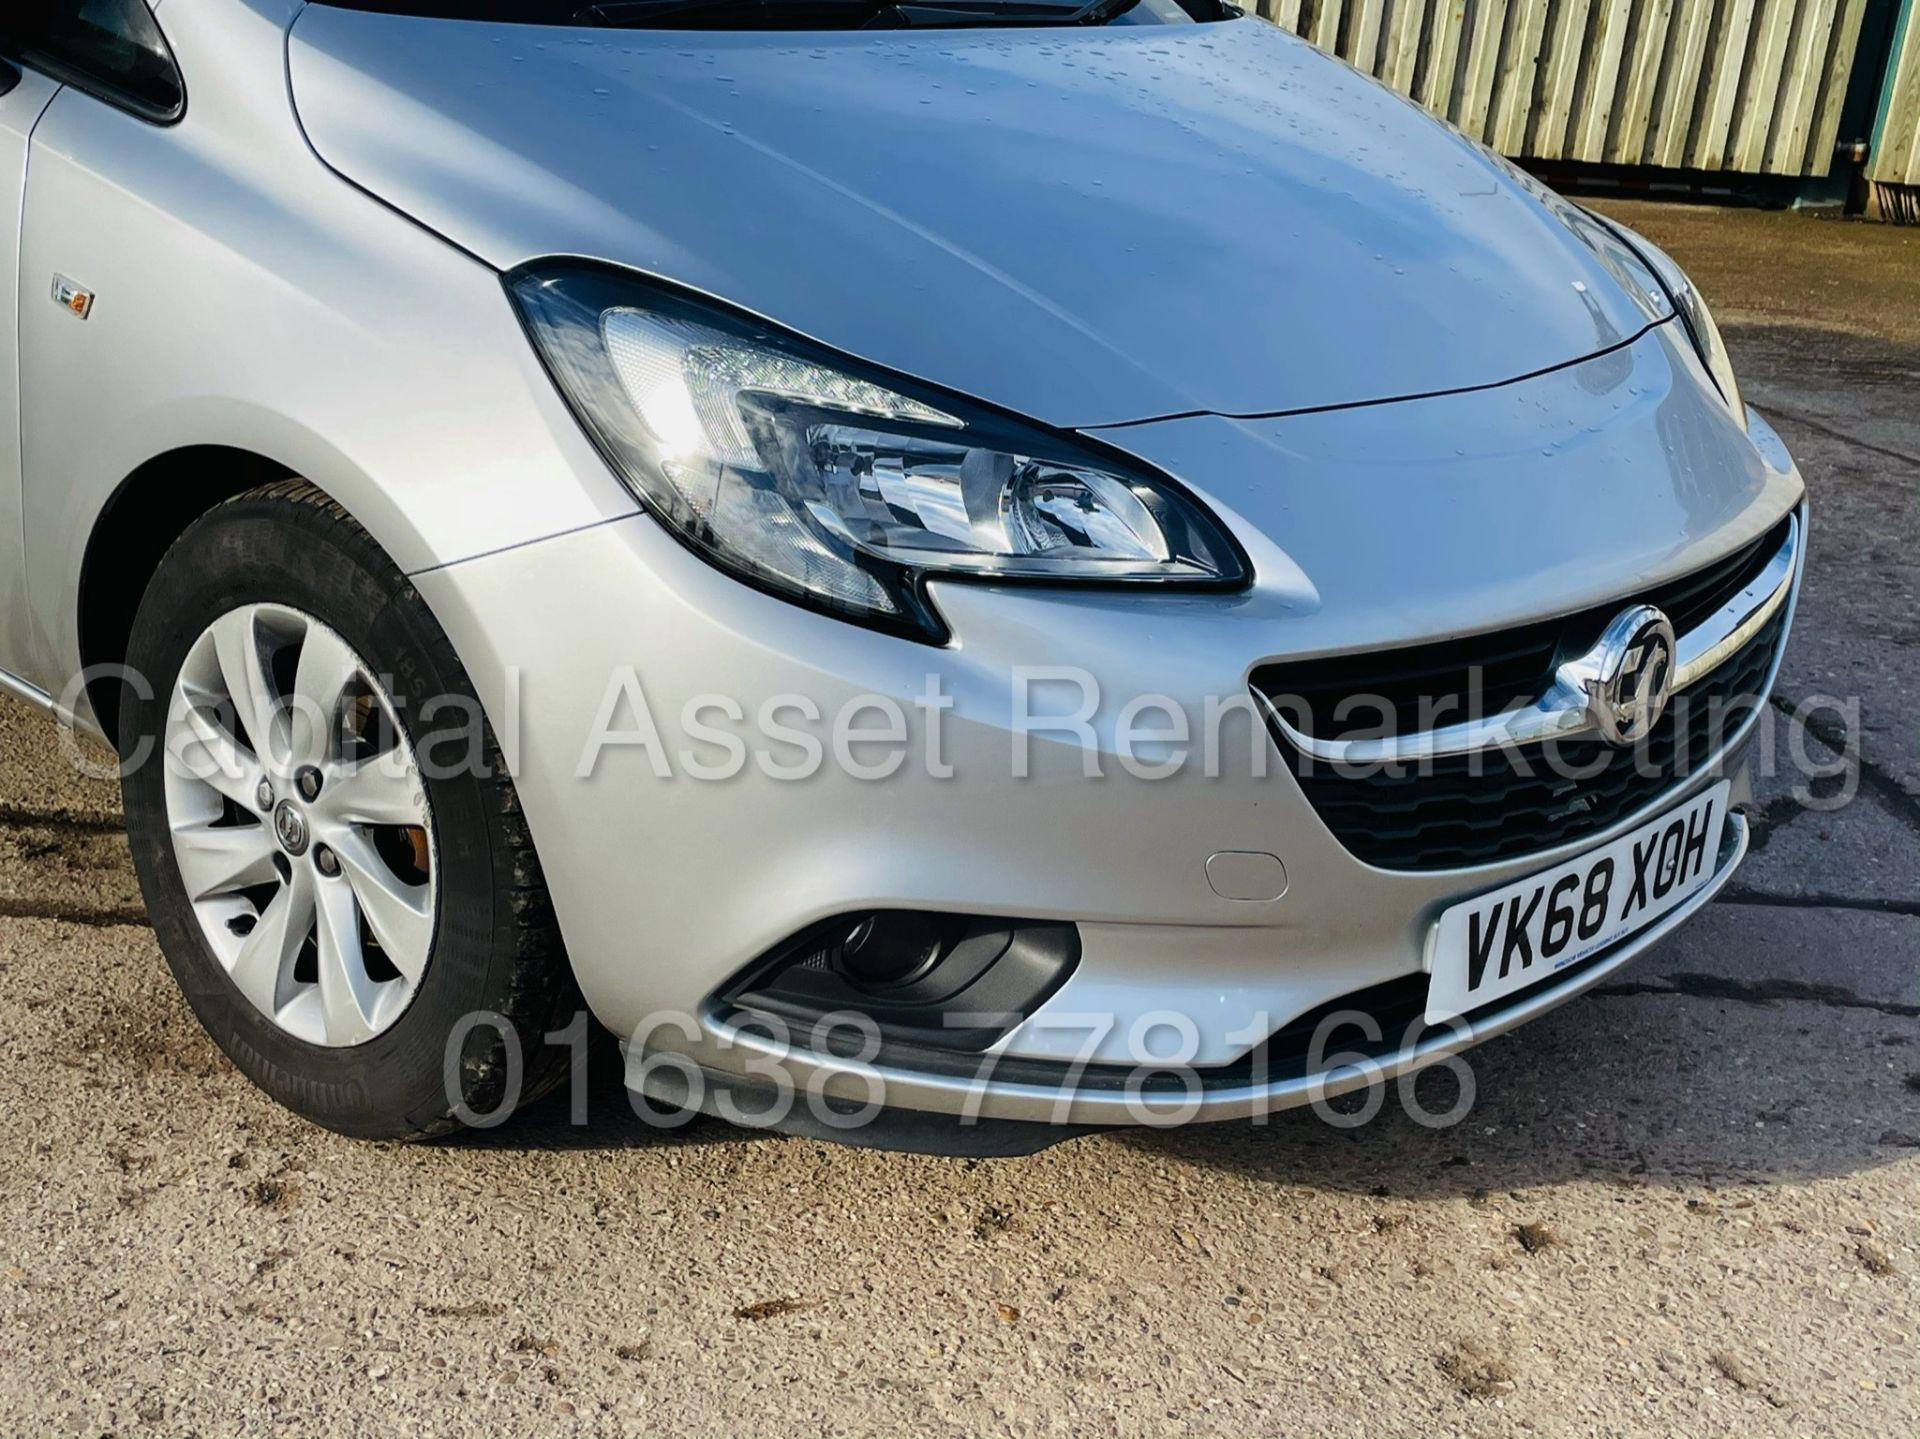 On Sale VAUXHALL CORSA *DESIGN EDITION* 5 DOOR HATCHBACK (2019 - NEW MODEL) 1.4 PETROL - (1 OWNER) - Image 15 of 42